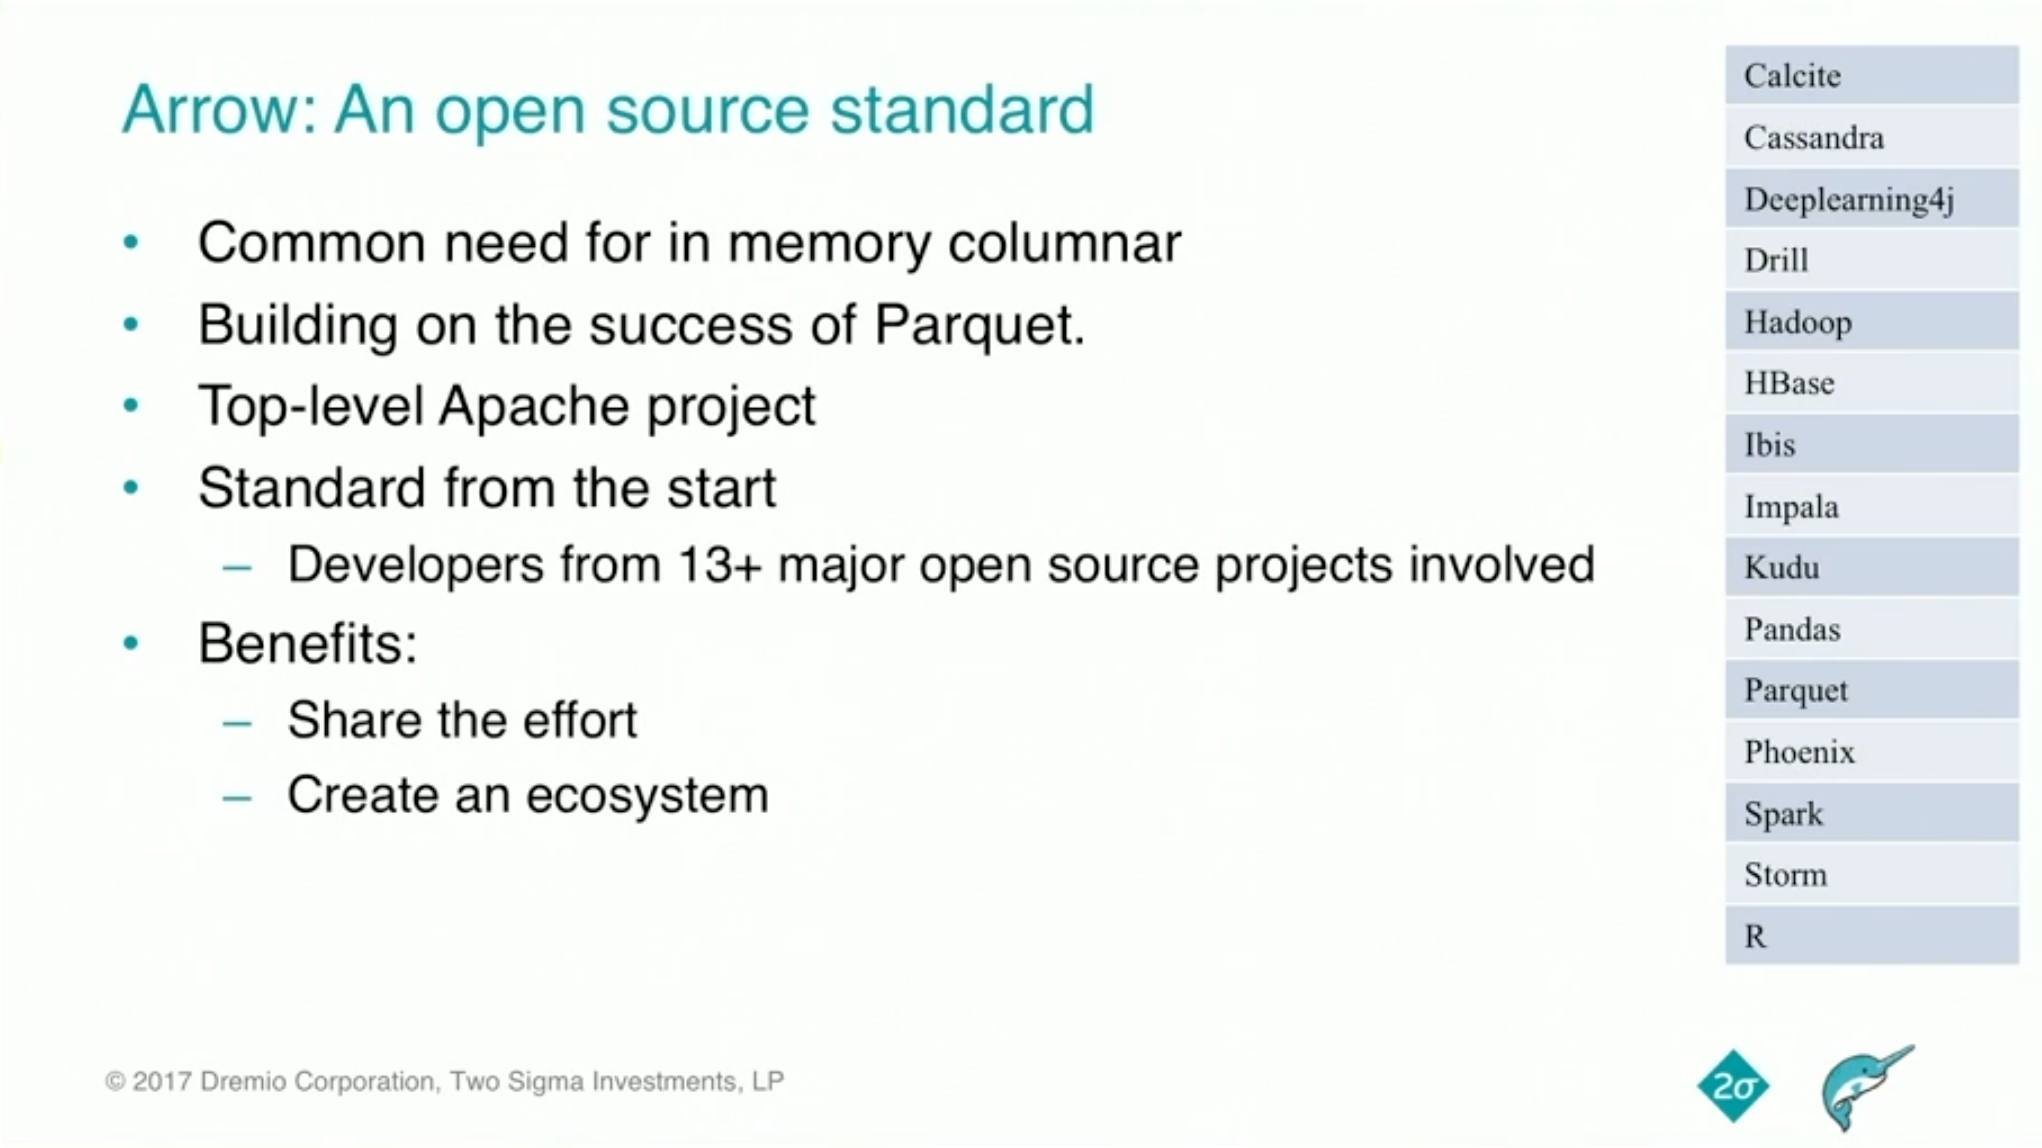 Improving Python and Spark Performance and Interoperability with Apache Arrow